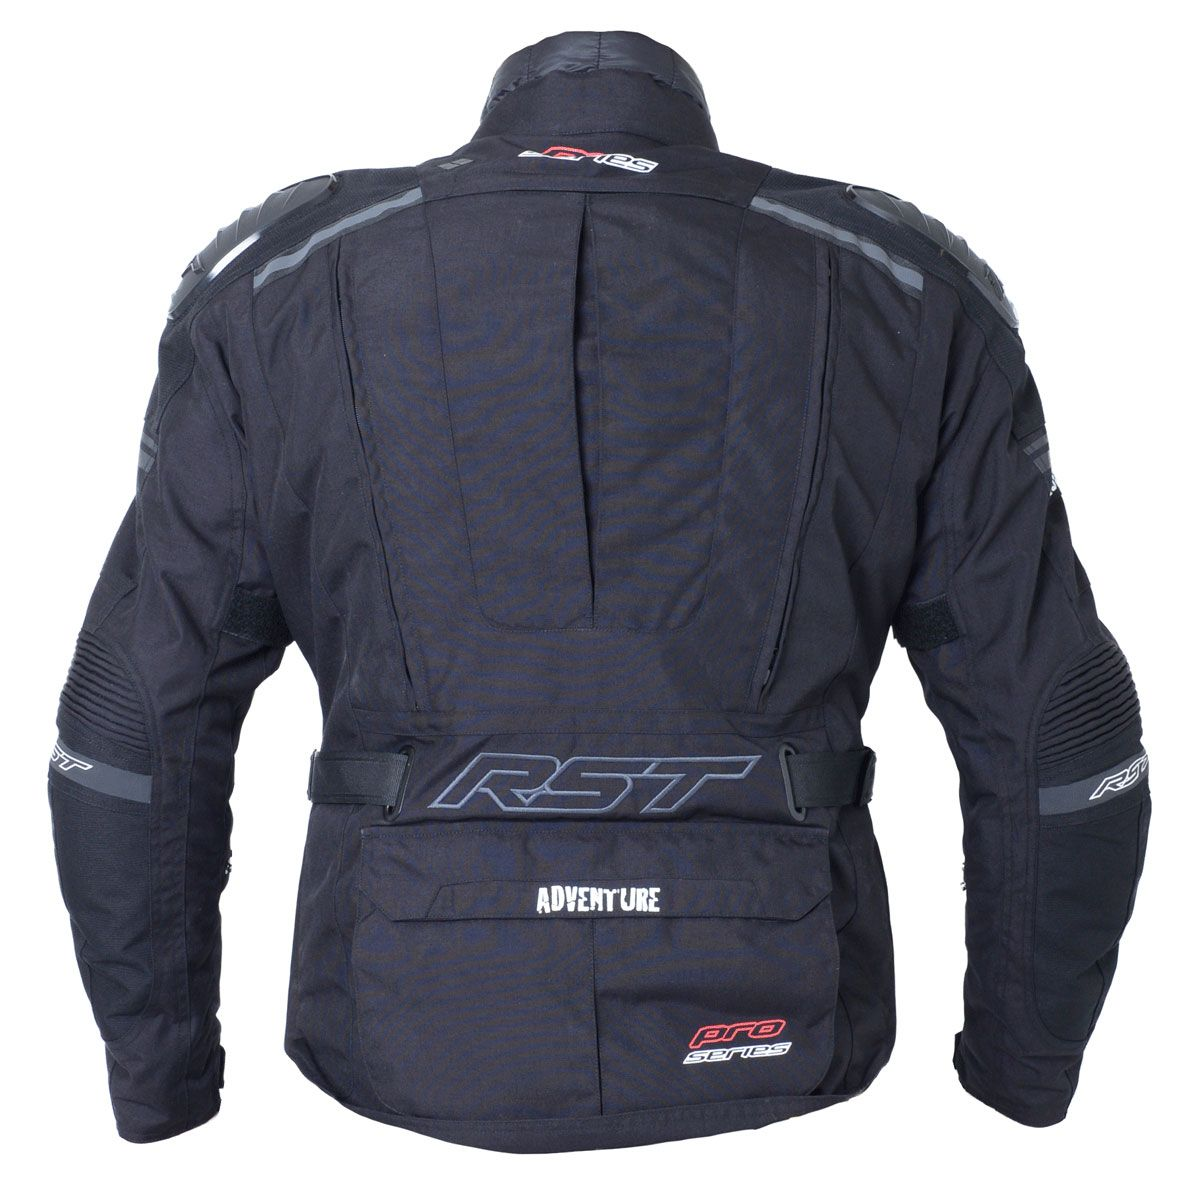 RST Pro Series Adventure III Textile Motorcycle Jacket Black